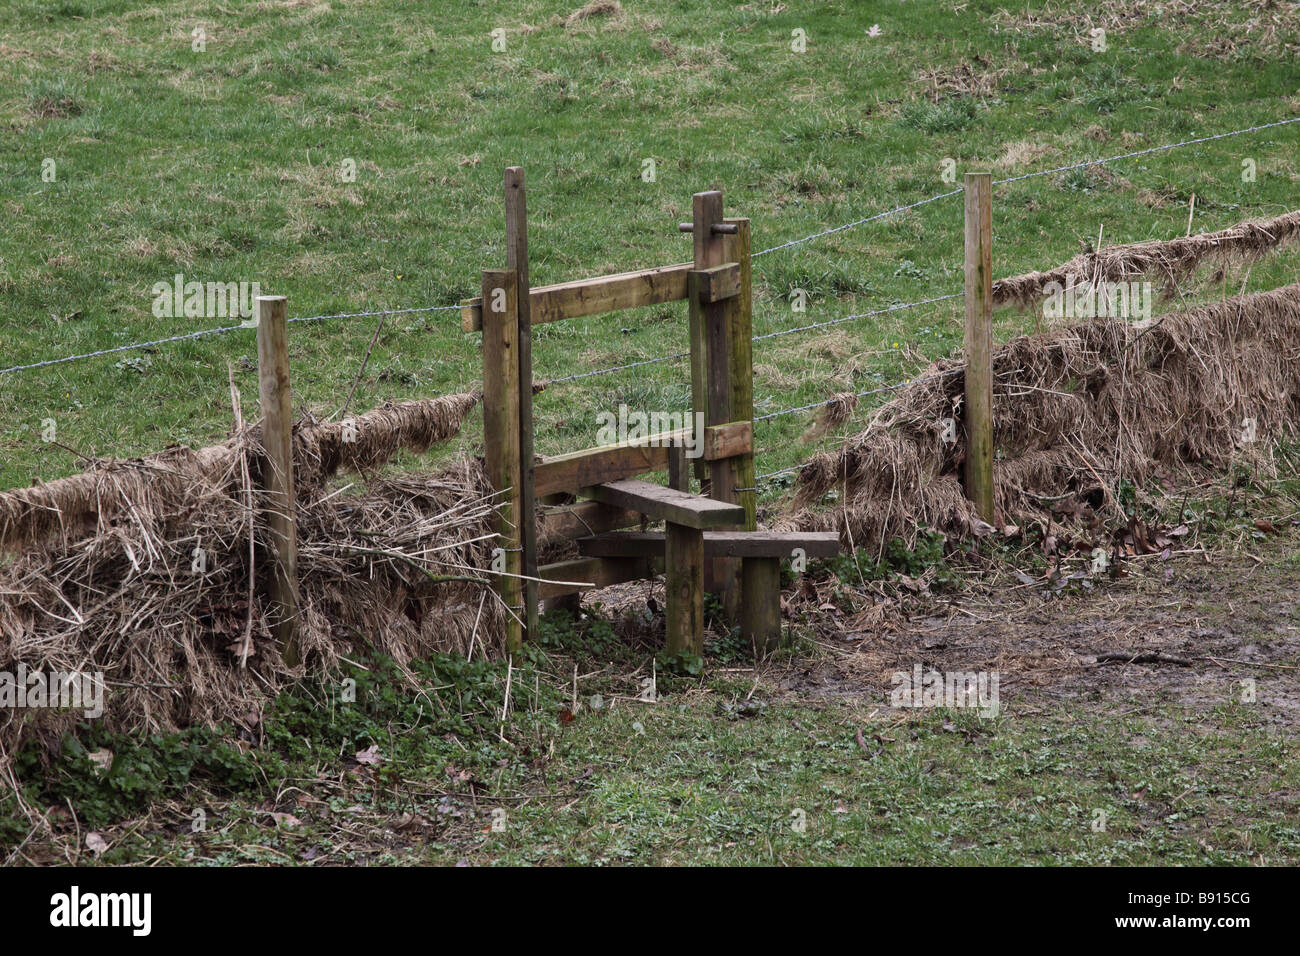 A wooden stile in a barbed wire fence giving access from one field to another - Stock Image